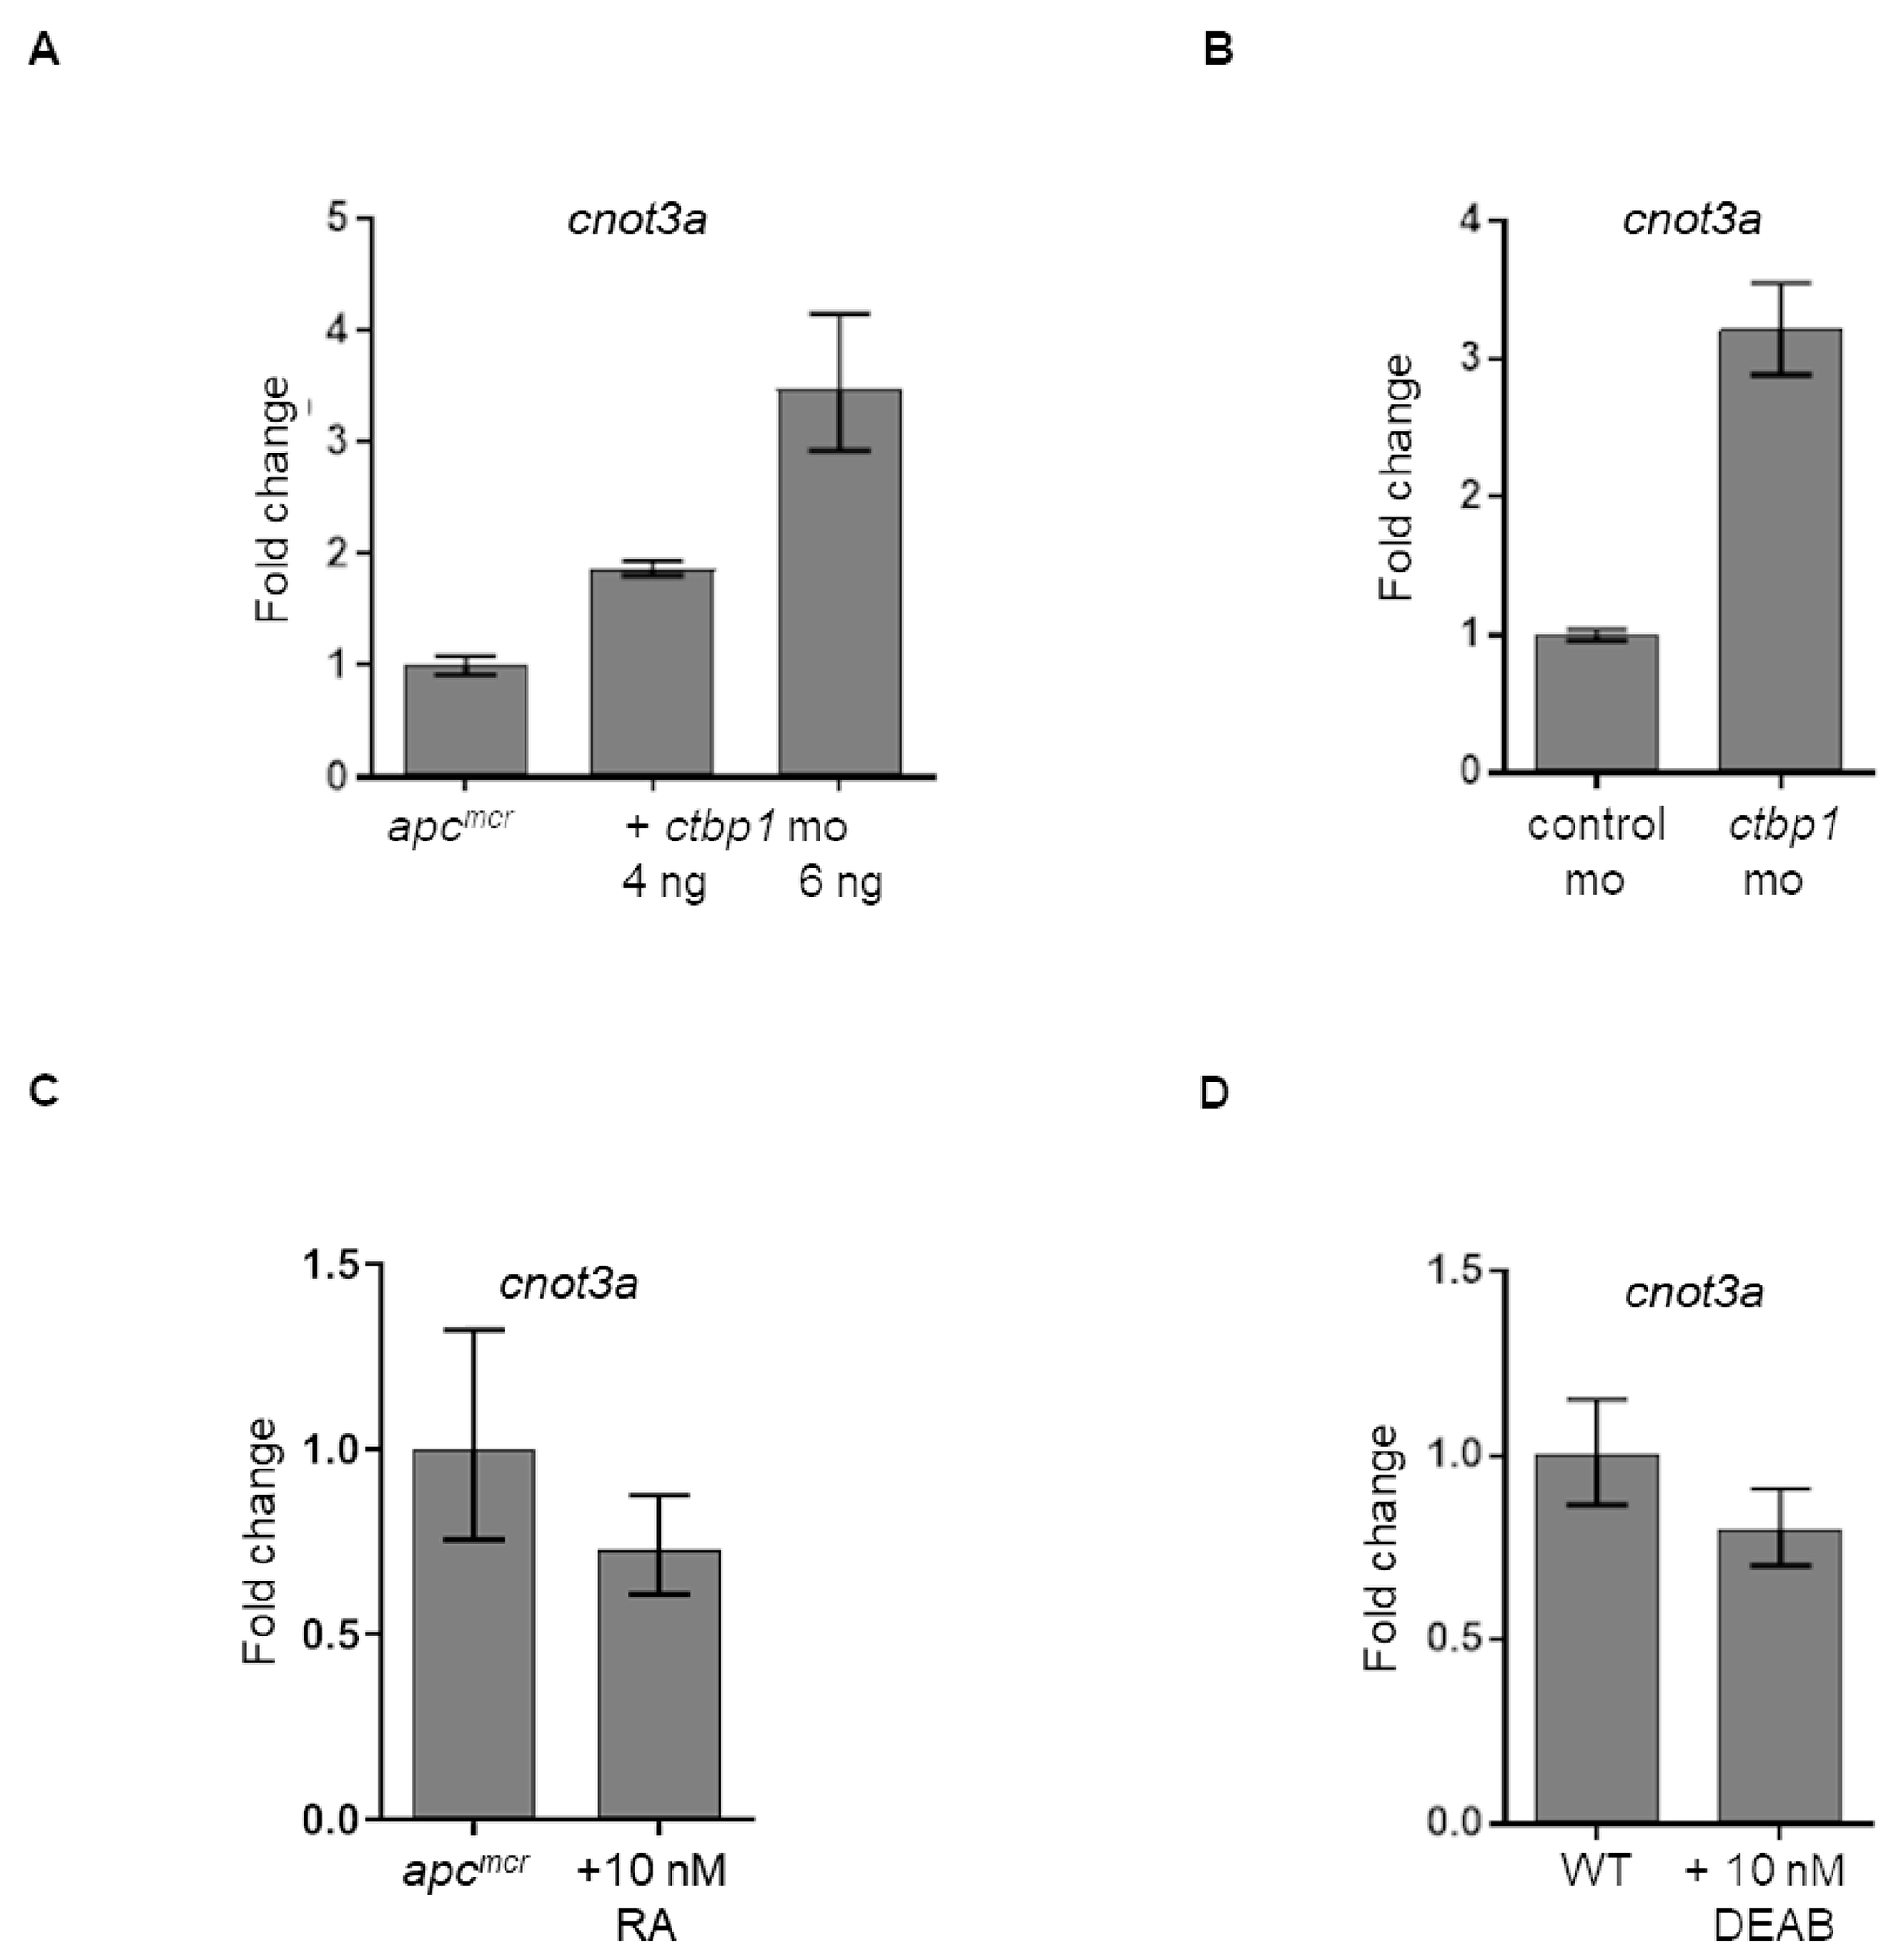 Regulation of cnot3a expression by ctbp1.